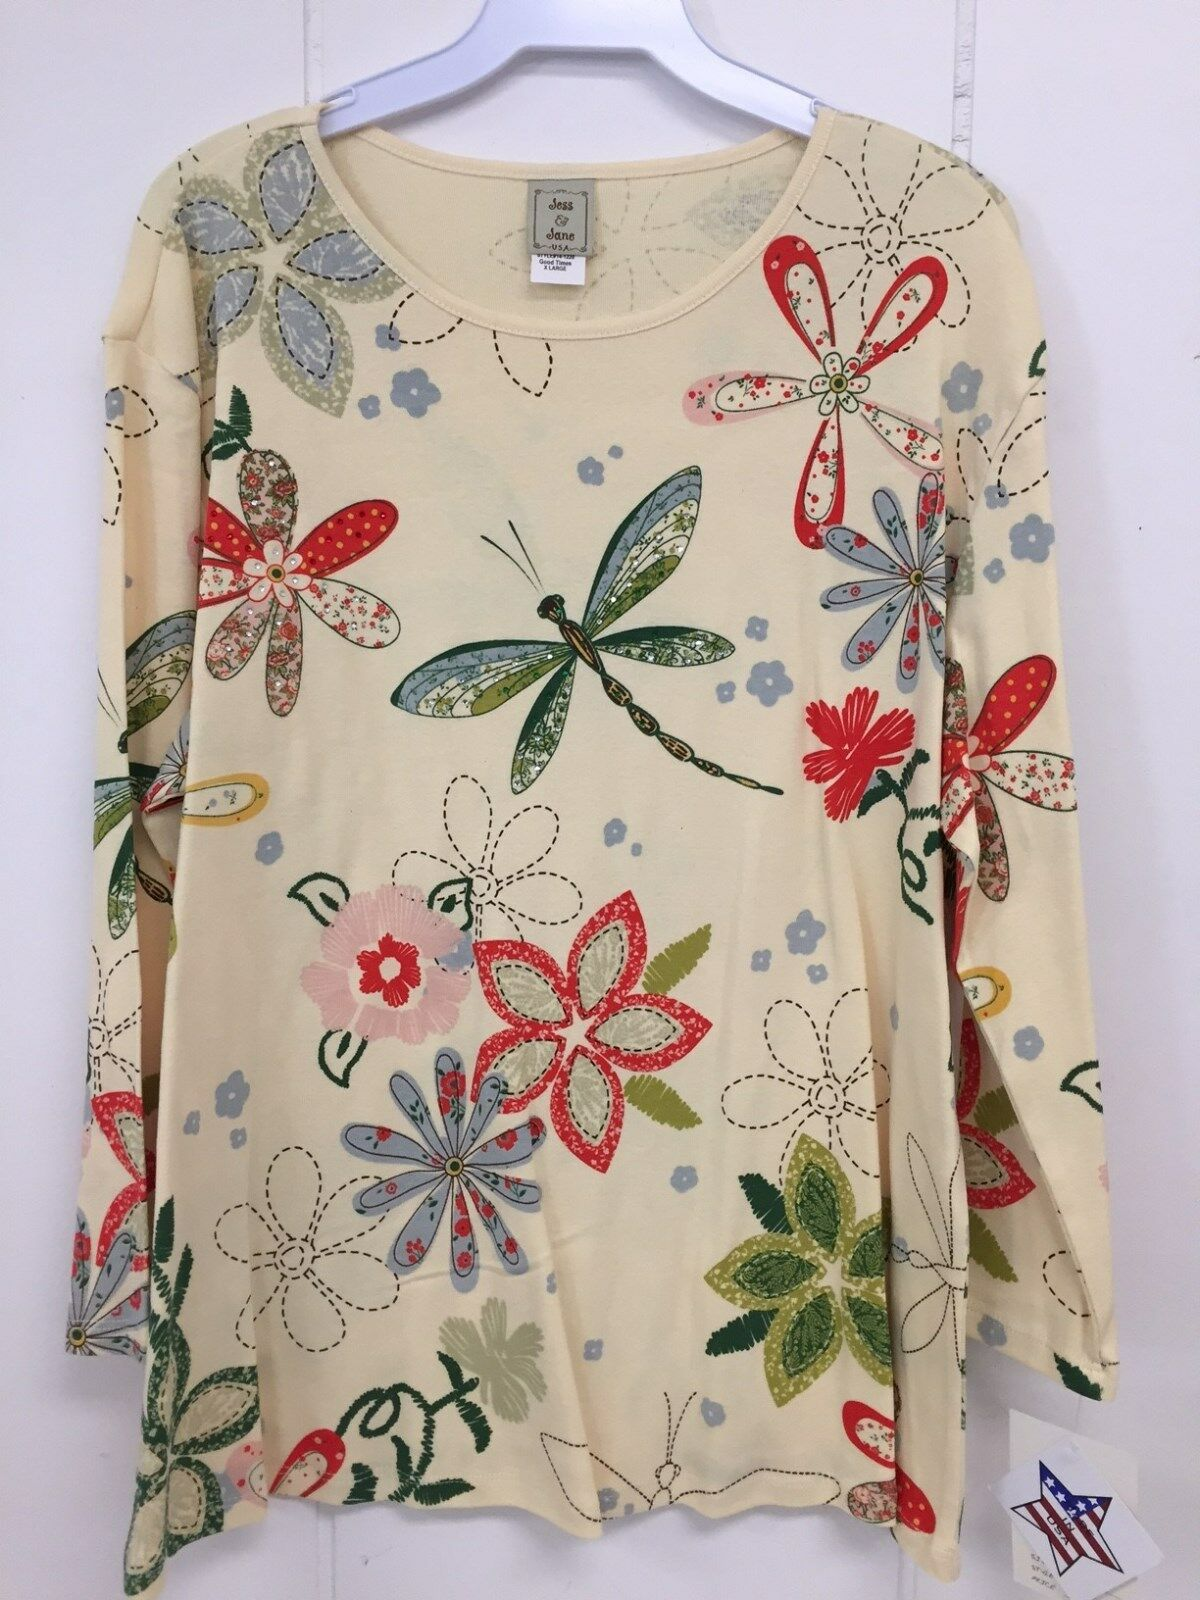 Jess and Jane Good Times Dragonfly Floral Flowers Shirt Size New with Tags